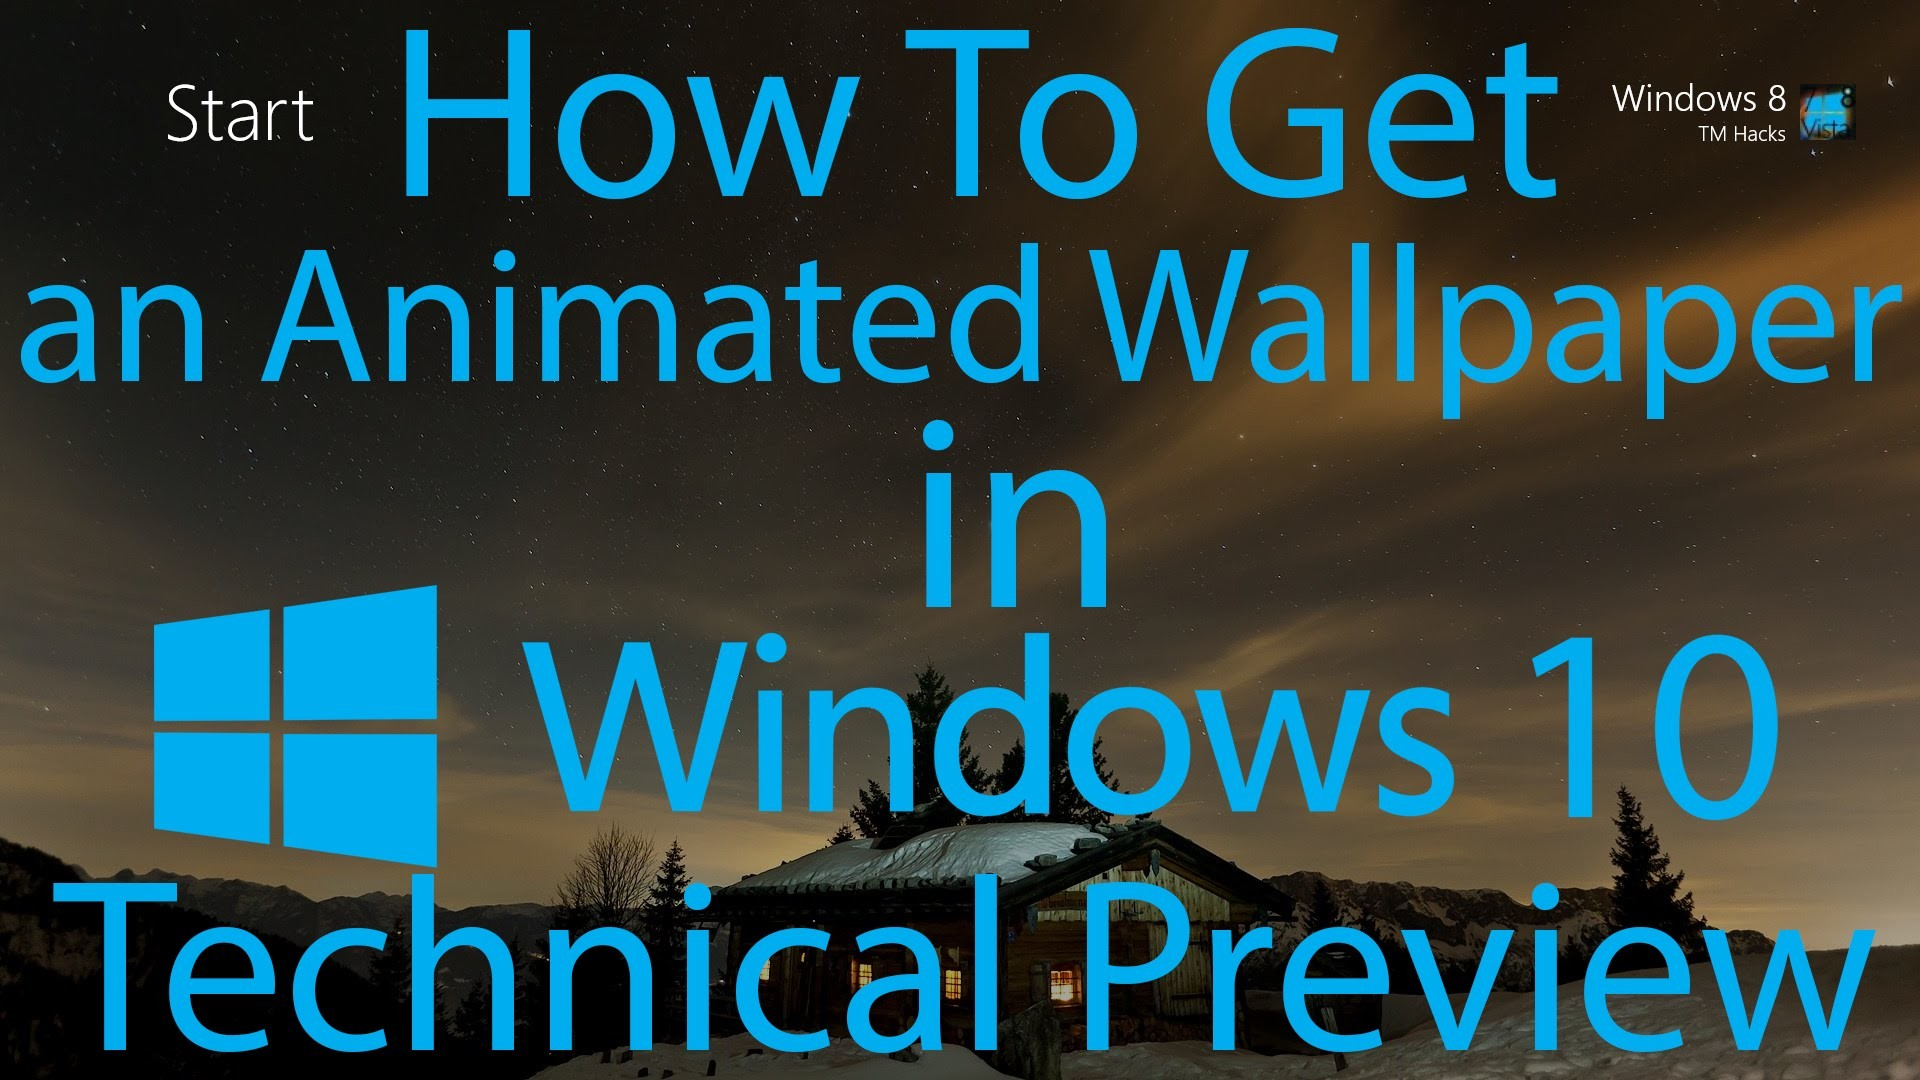 How To Have an Animated Wallpaper in Windows 10 Technical Preview.